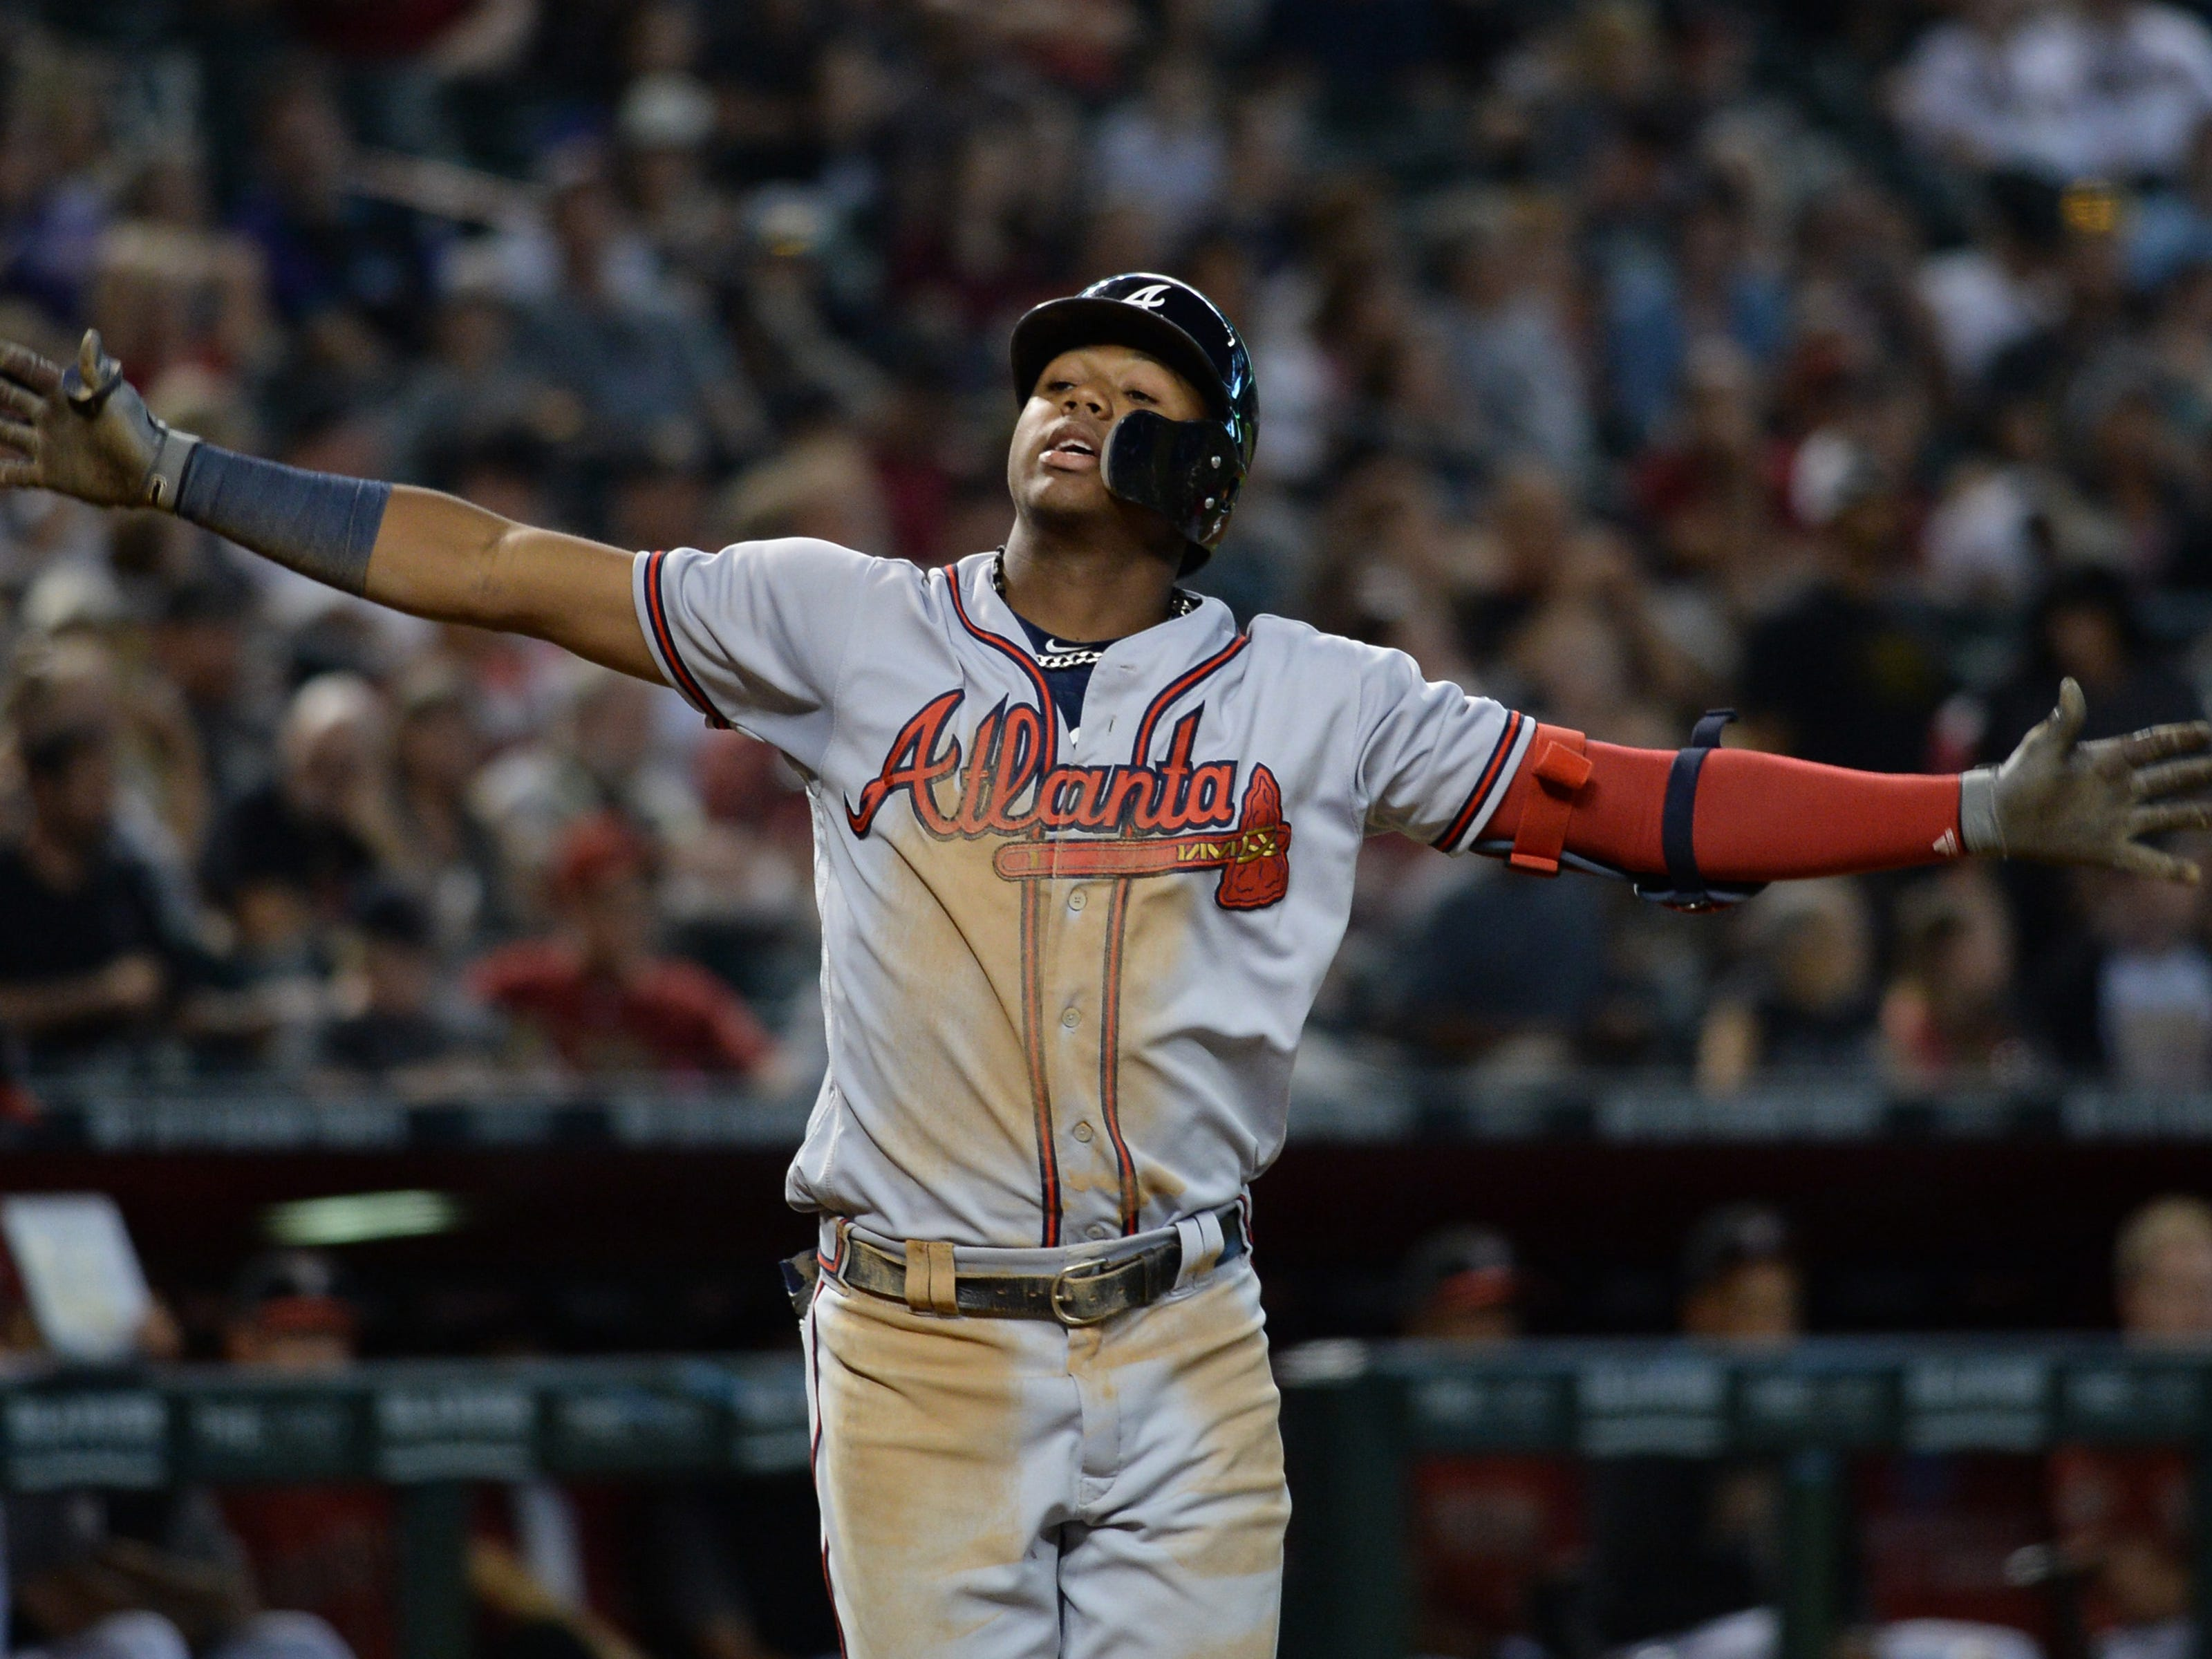 Sep 9, 2018; Phoenix, AZ, USA; Atlanta Braves left fielder Ronald Acuna Jr. (13) celebrates after hitting a two-run home run against the Arizona Diamondbacks during the sixth inning at Chase Field.